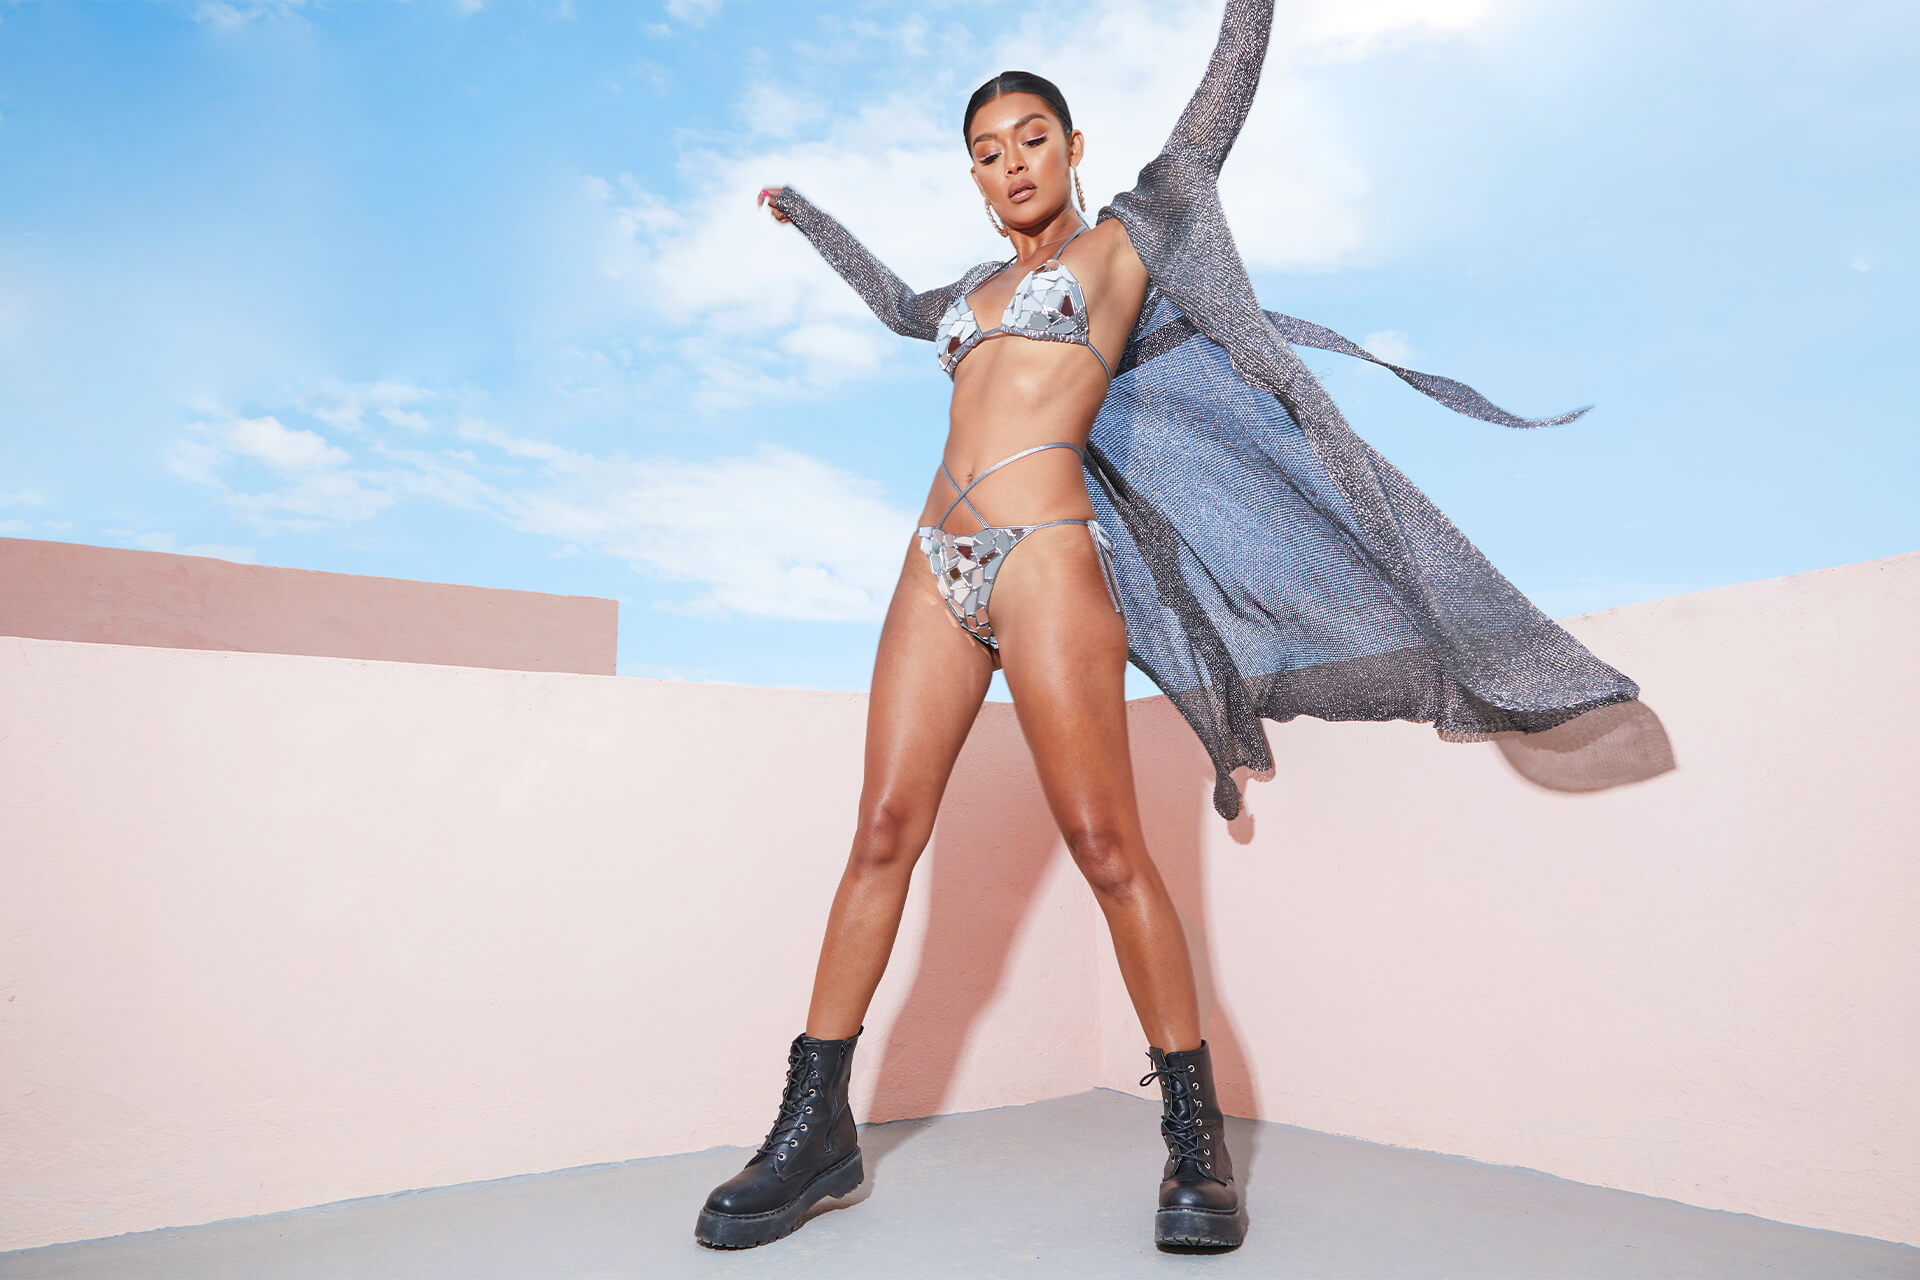 Destination Swim Ibiza Lookbook Image 10